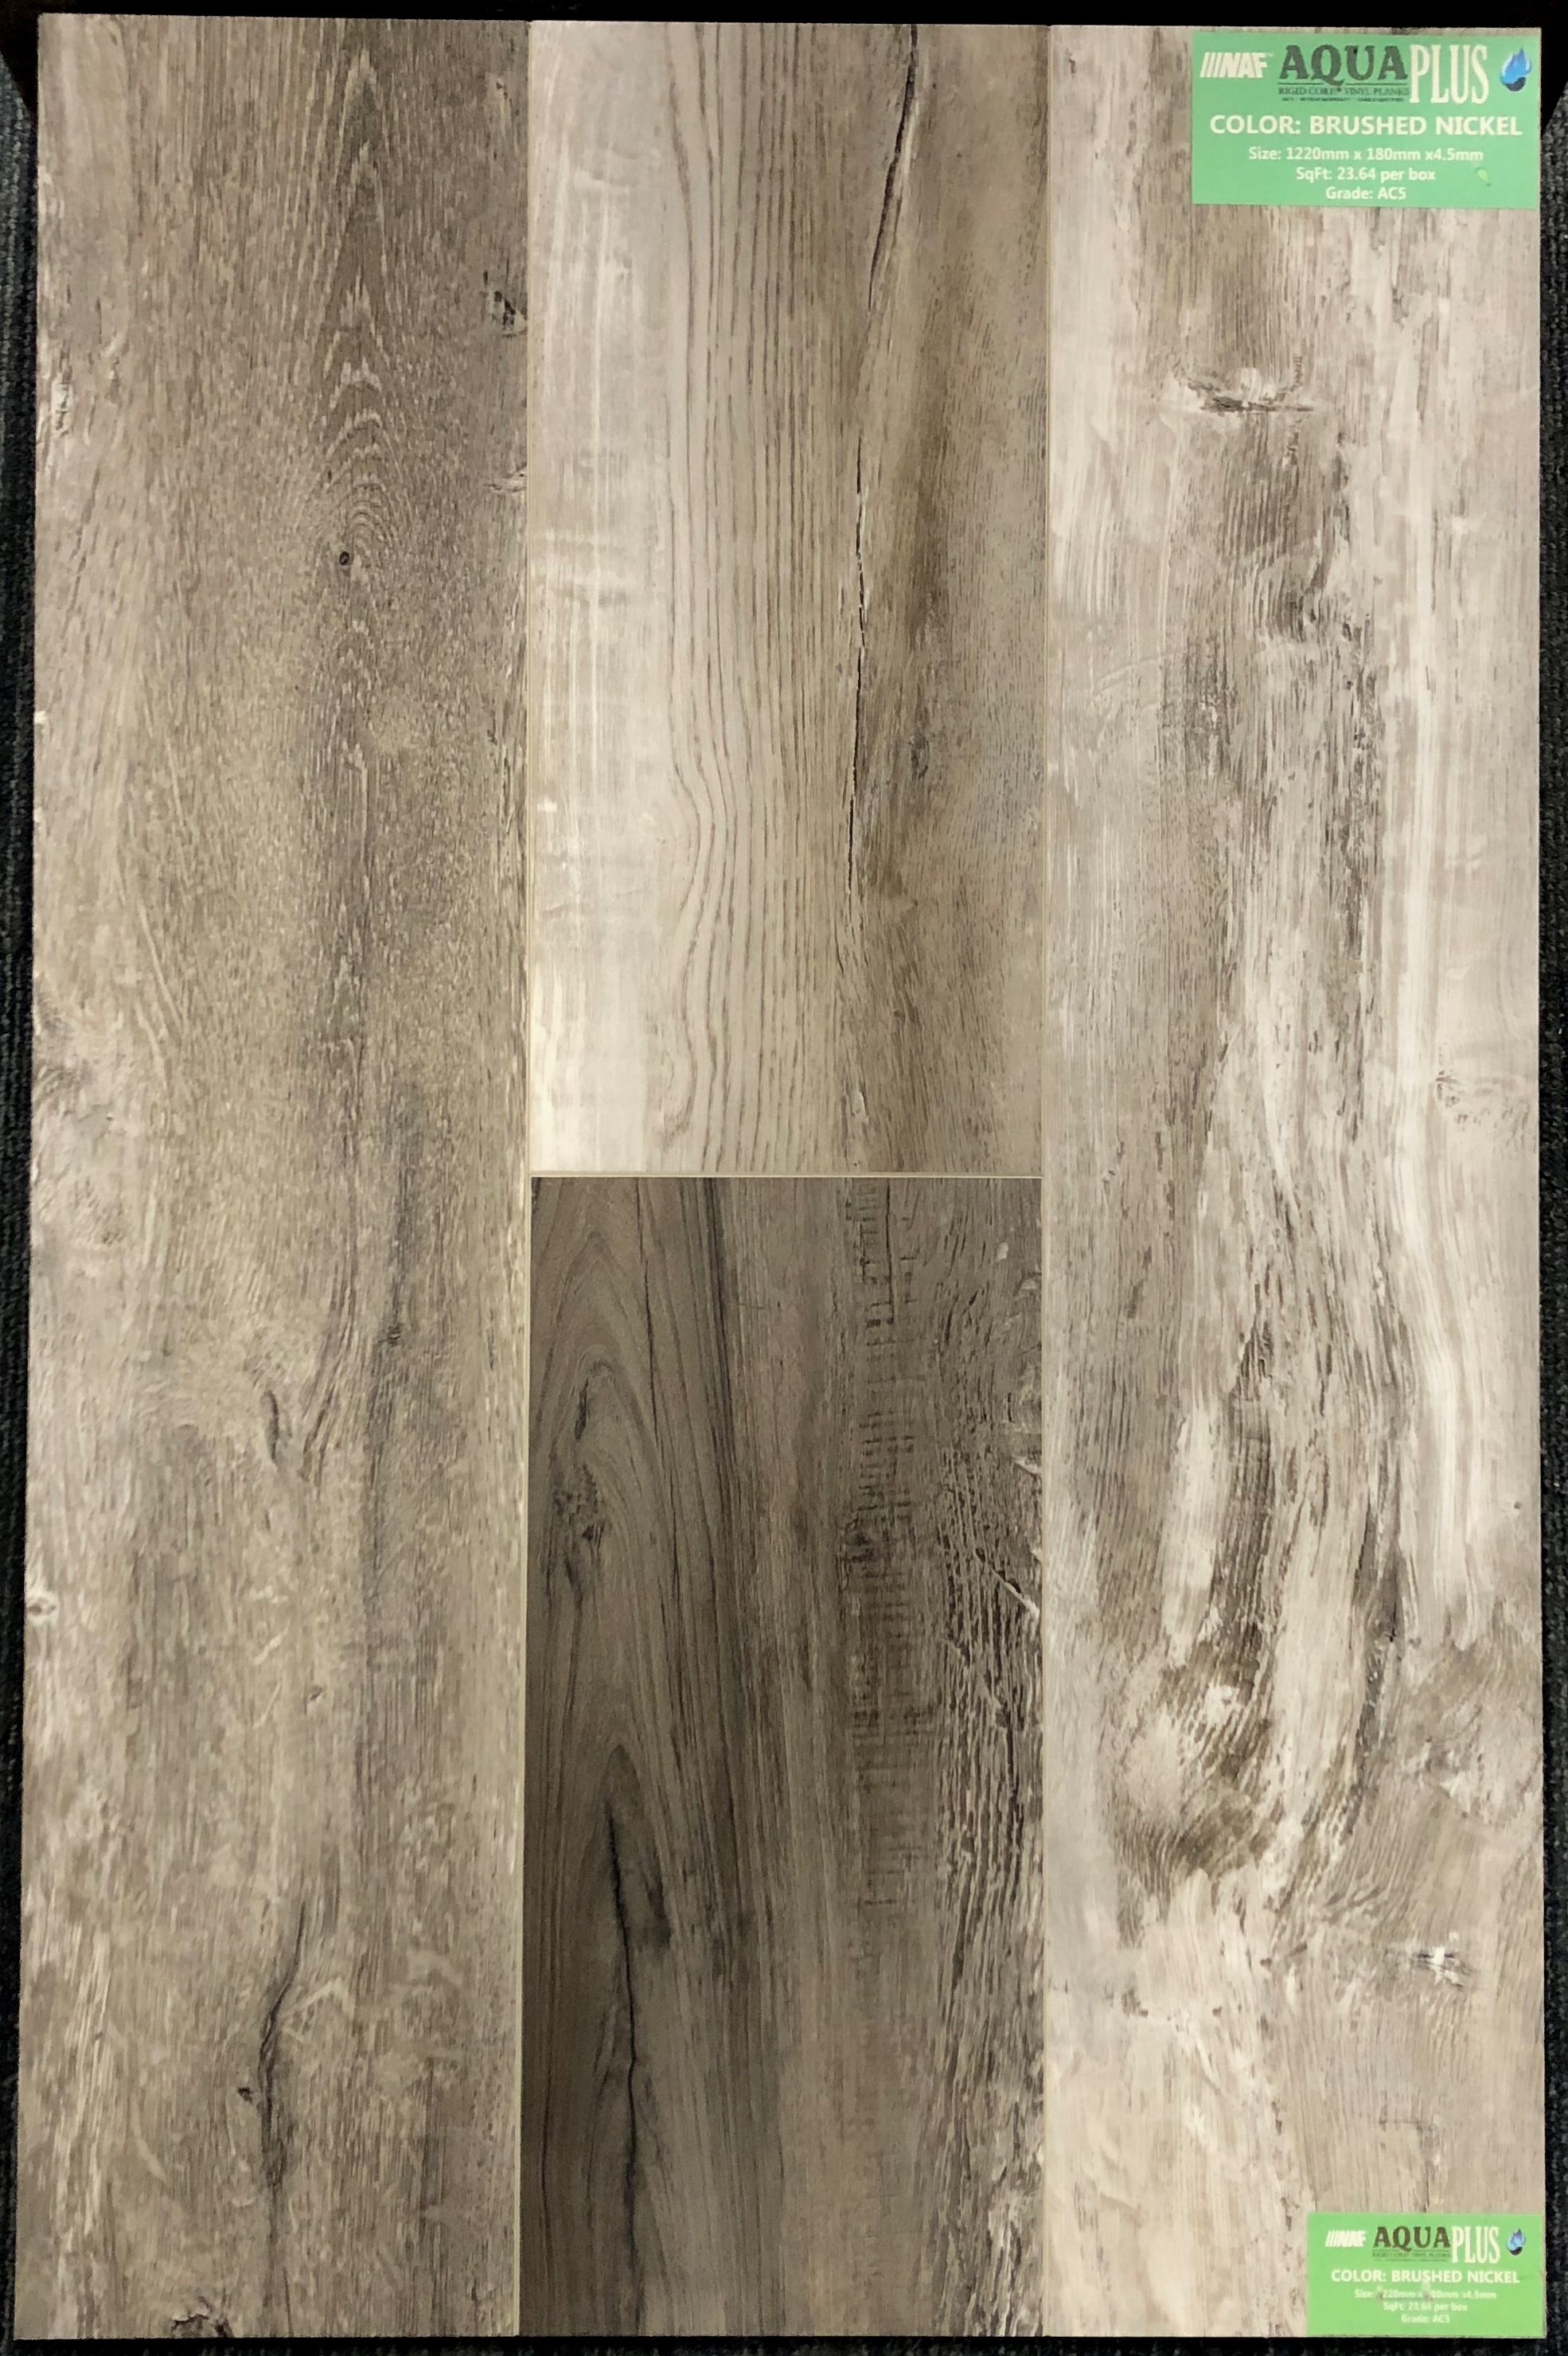 Brushed Nickel NAF AquaPlus 4MM Vinyl Flooring Image